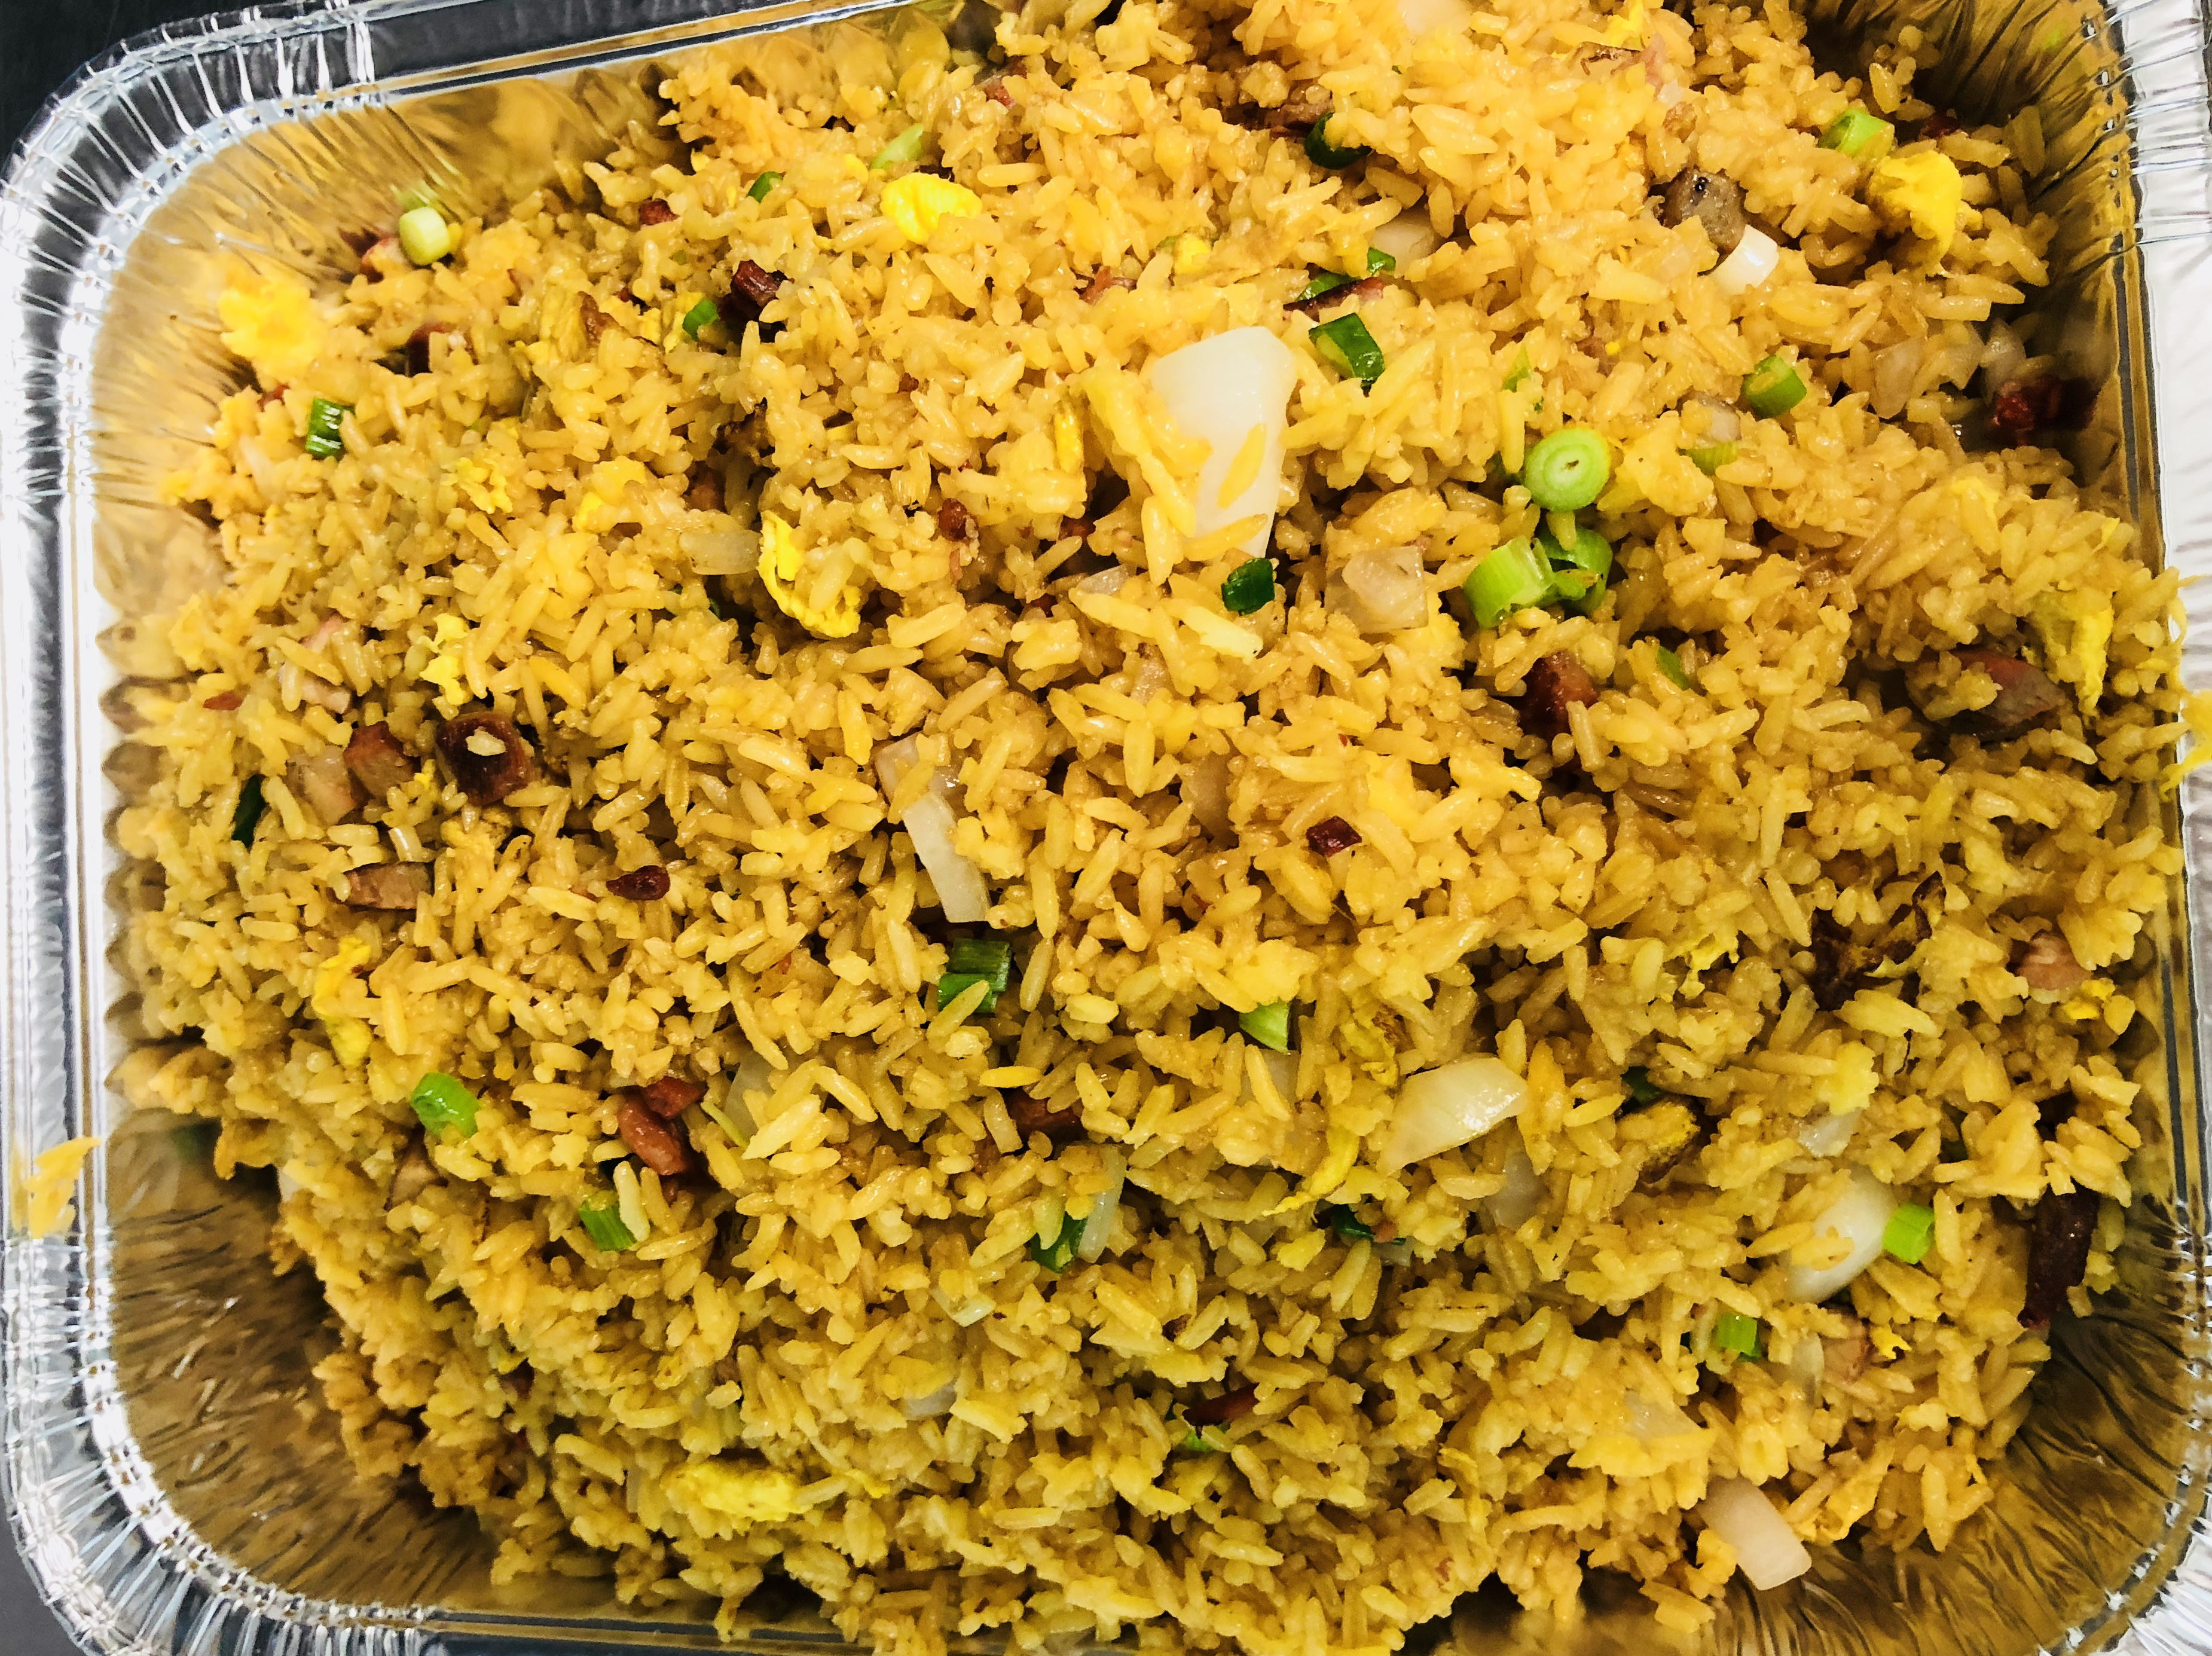 P1. Pork Fried Rice